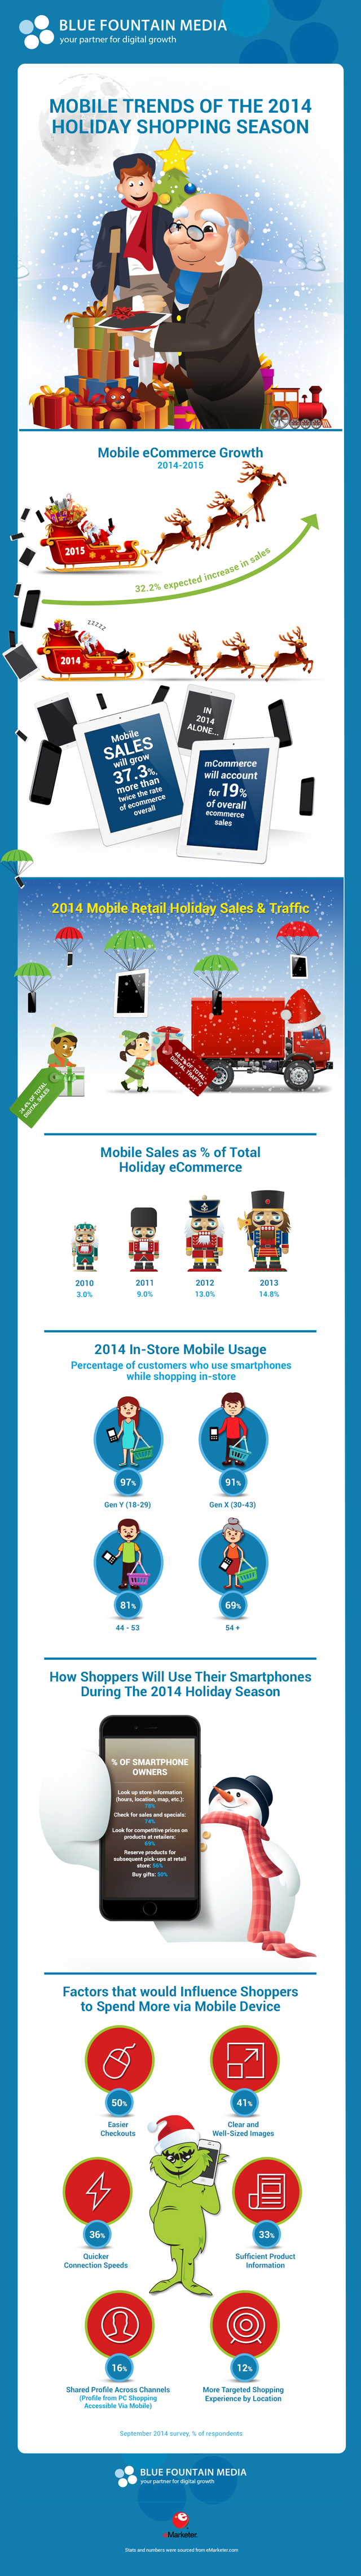 Mobile Trends of the 2014 Holiday Shopping Season